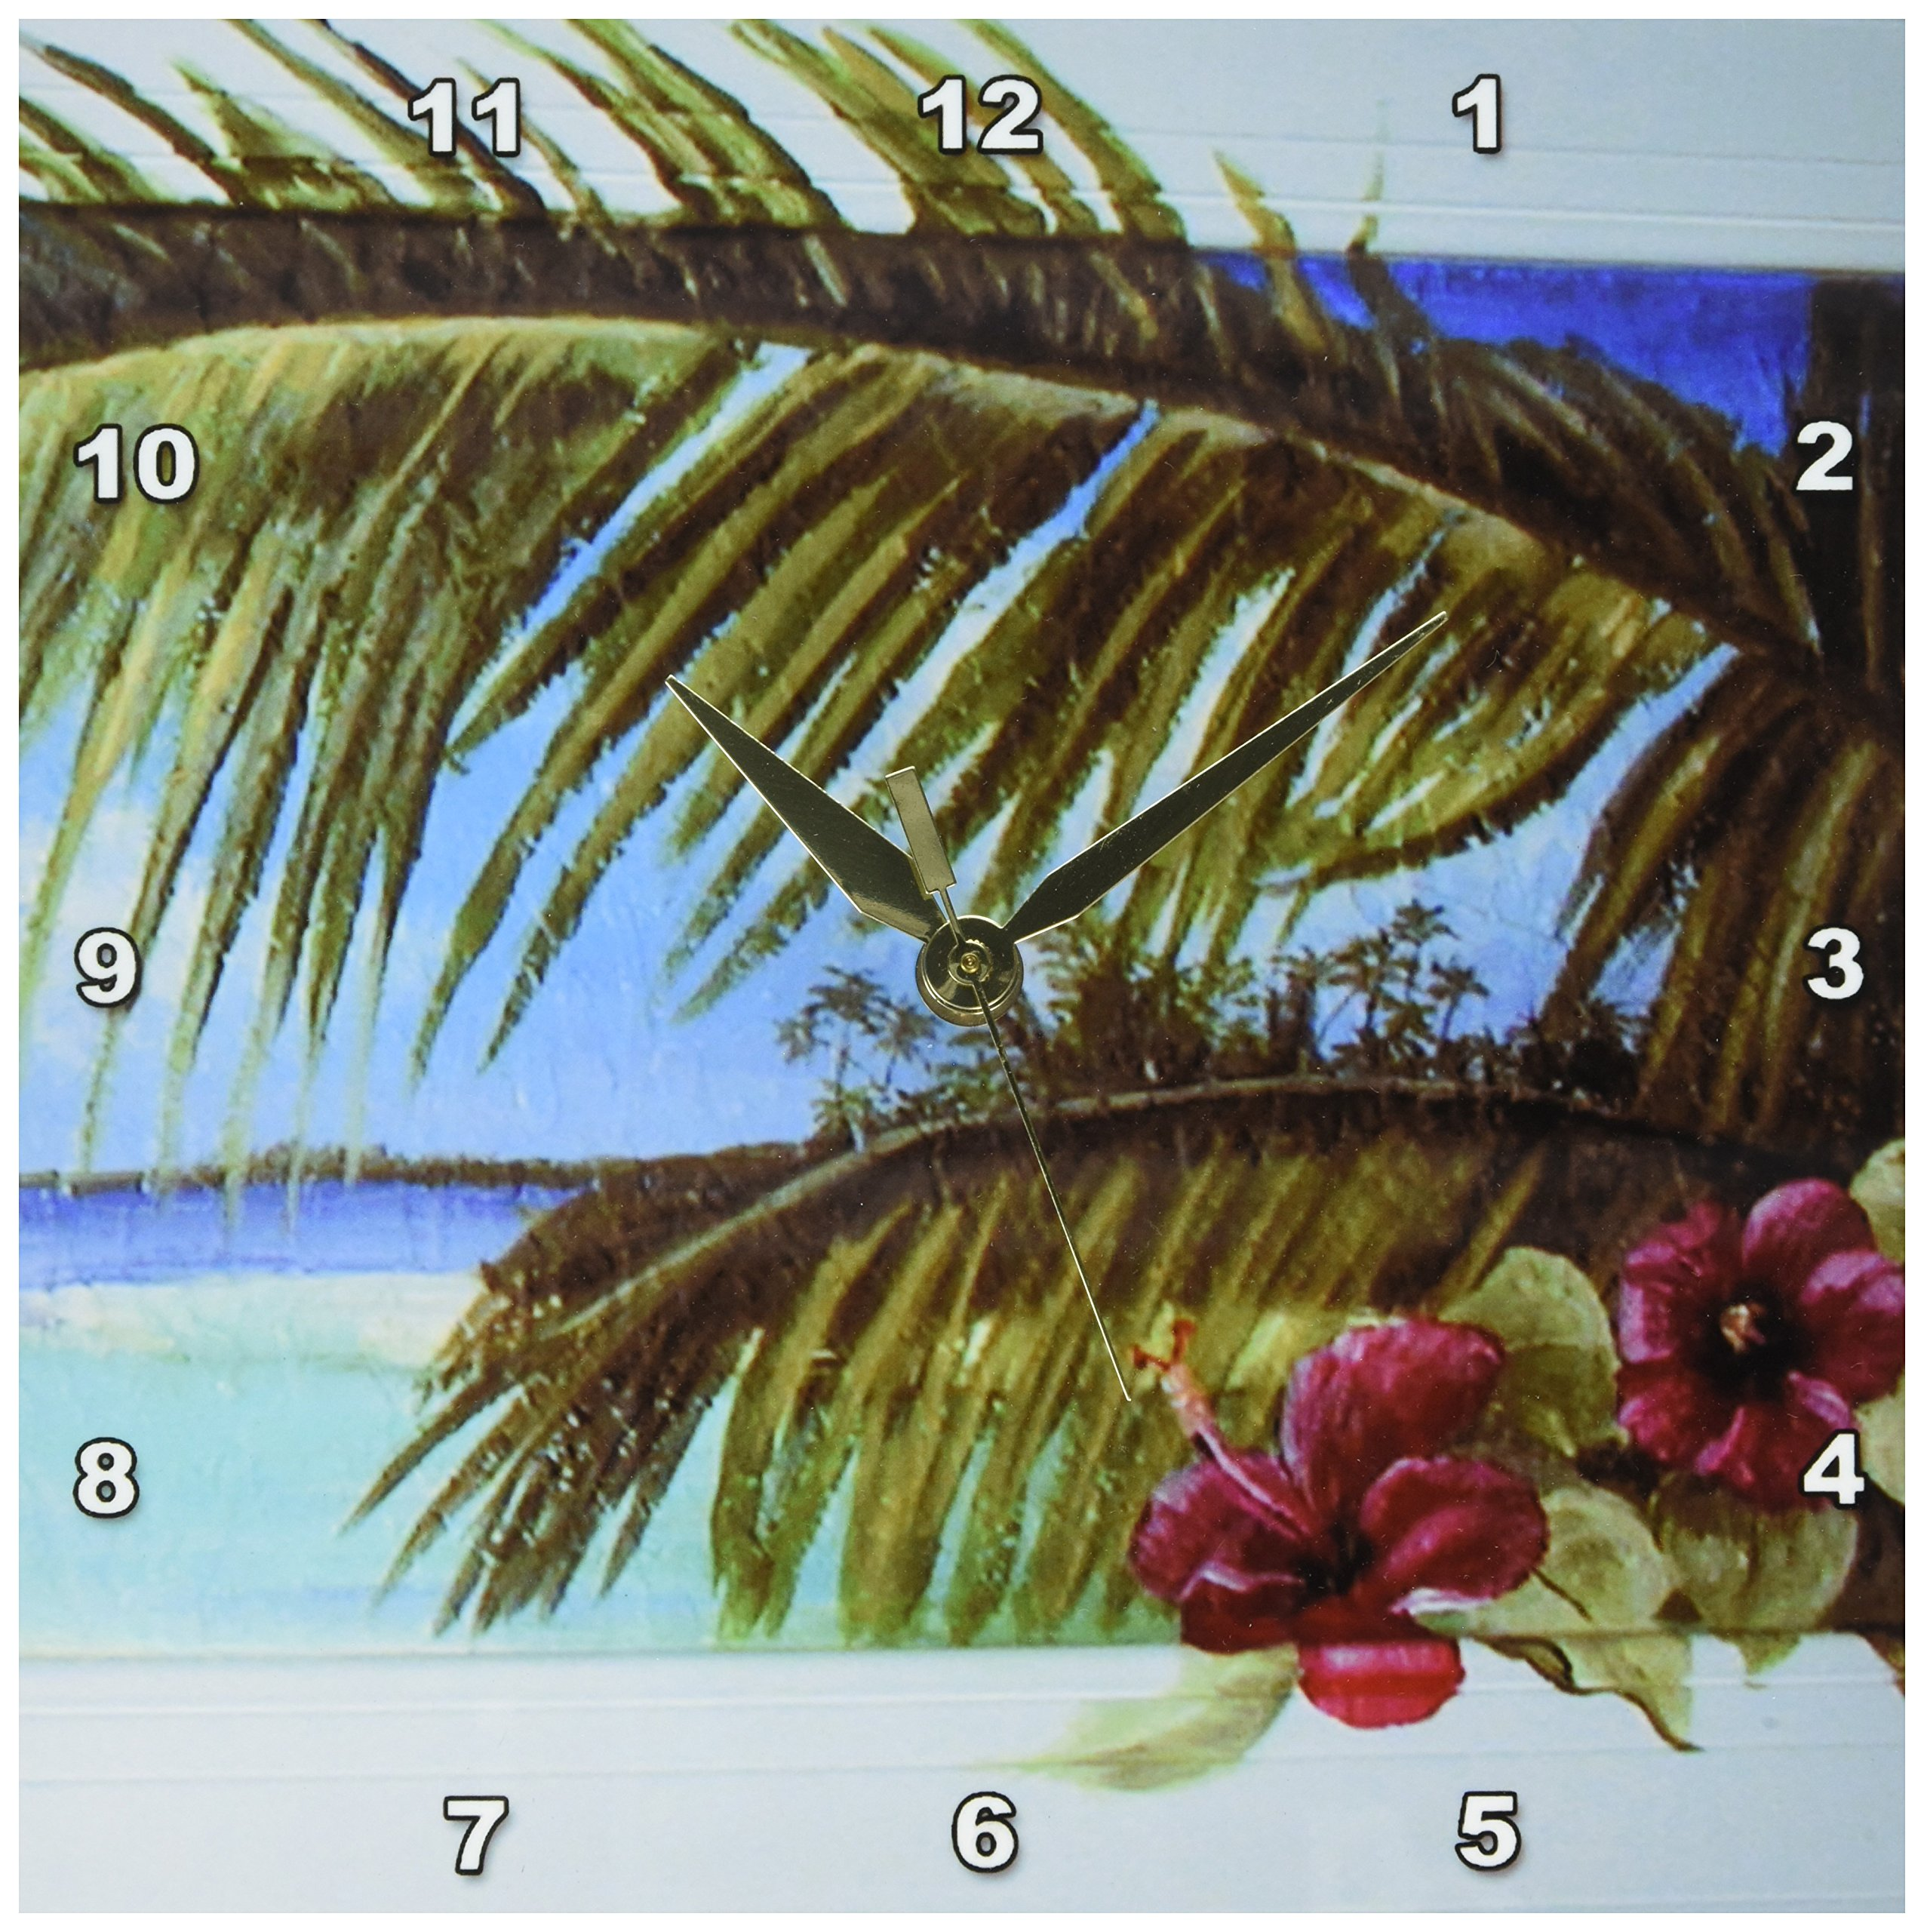 3dRose dpp_44367_1 Island Scene Looking Through Window with Hibiscus Flowers and Palm Leaves on Textured Background Wall Clock, 10 by 10-Inch